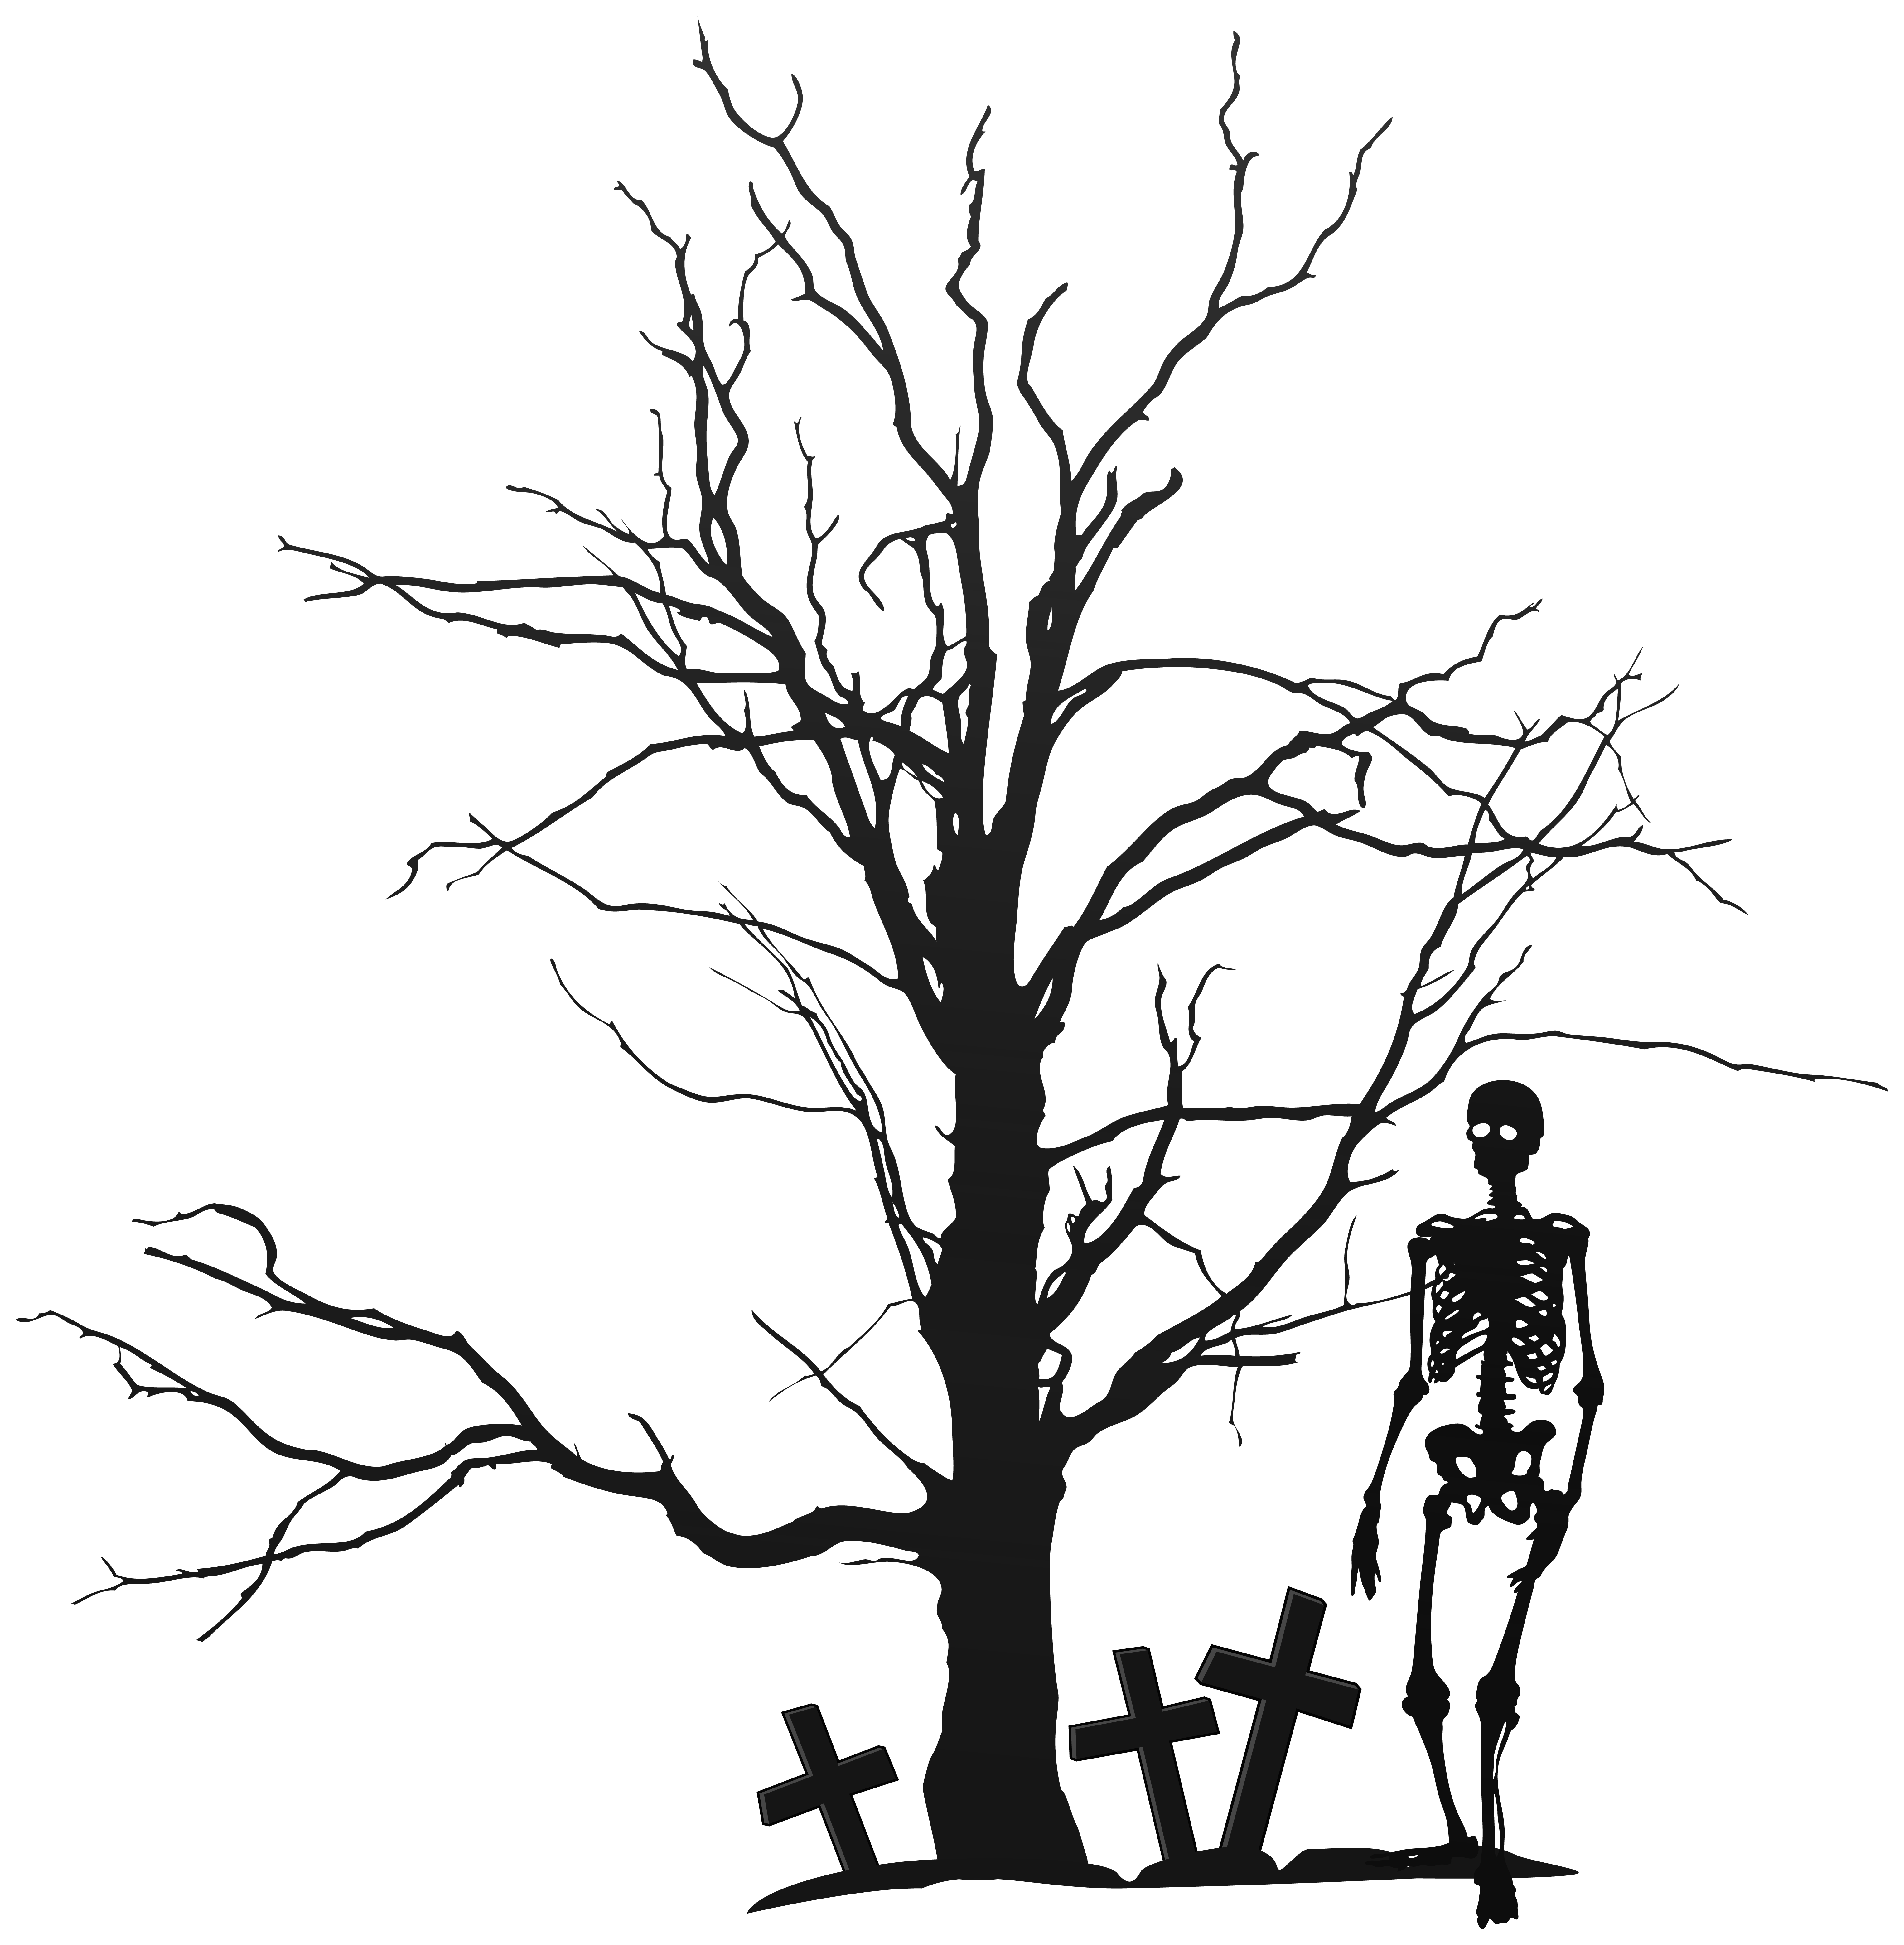 6106x6238 Halloween Tree And Skeleton Png Clipart Imageu200b Gallery